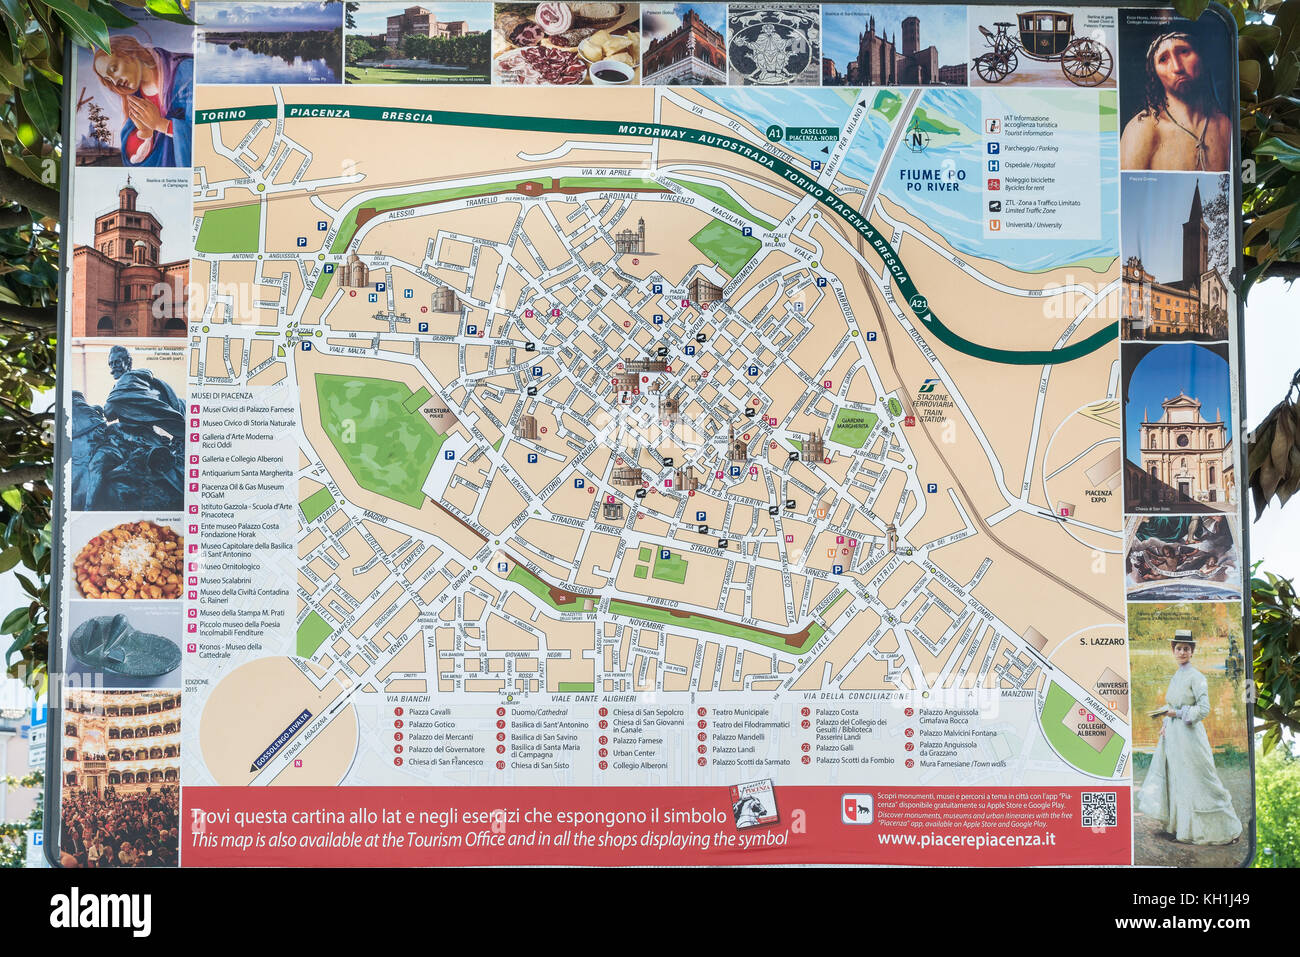 Piacenza Italy April 20 2017 Tourist Map Of The City Located